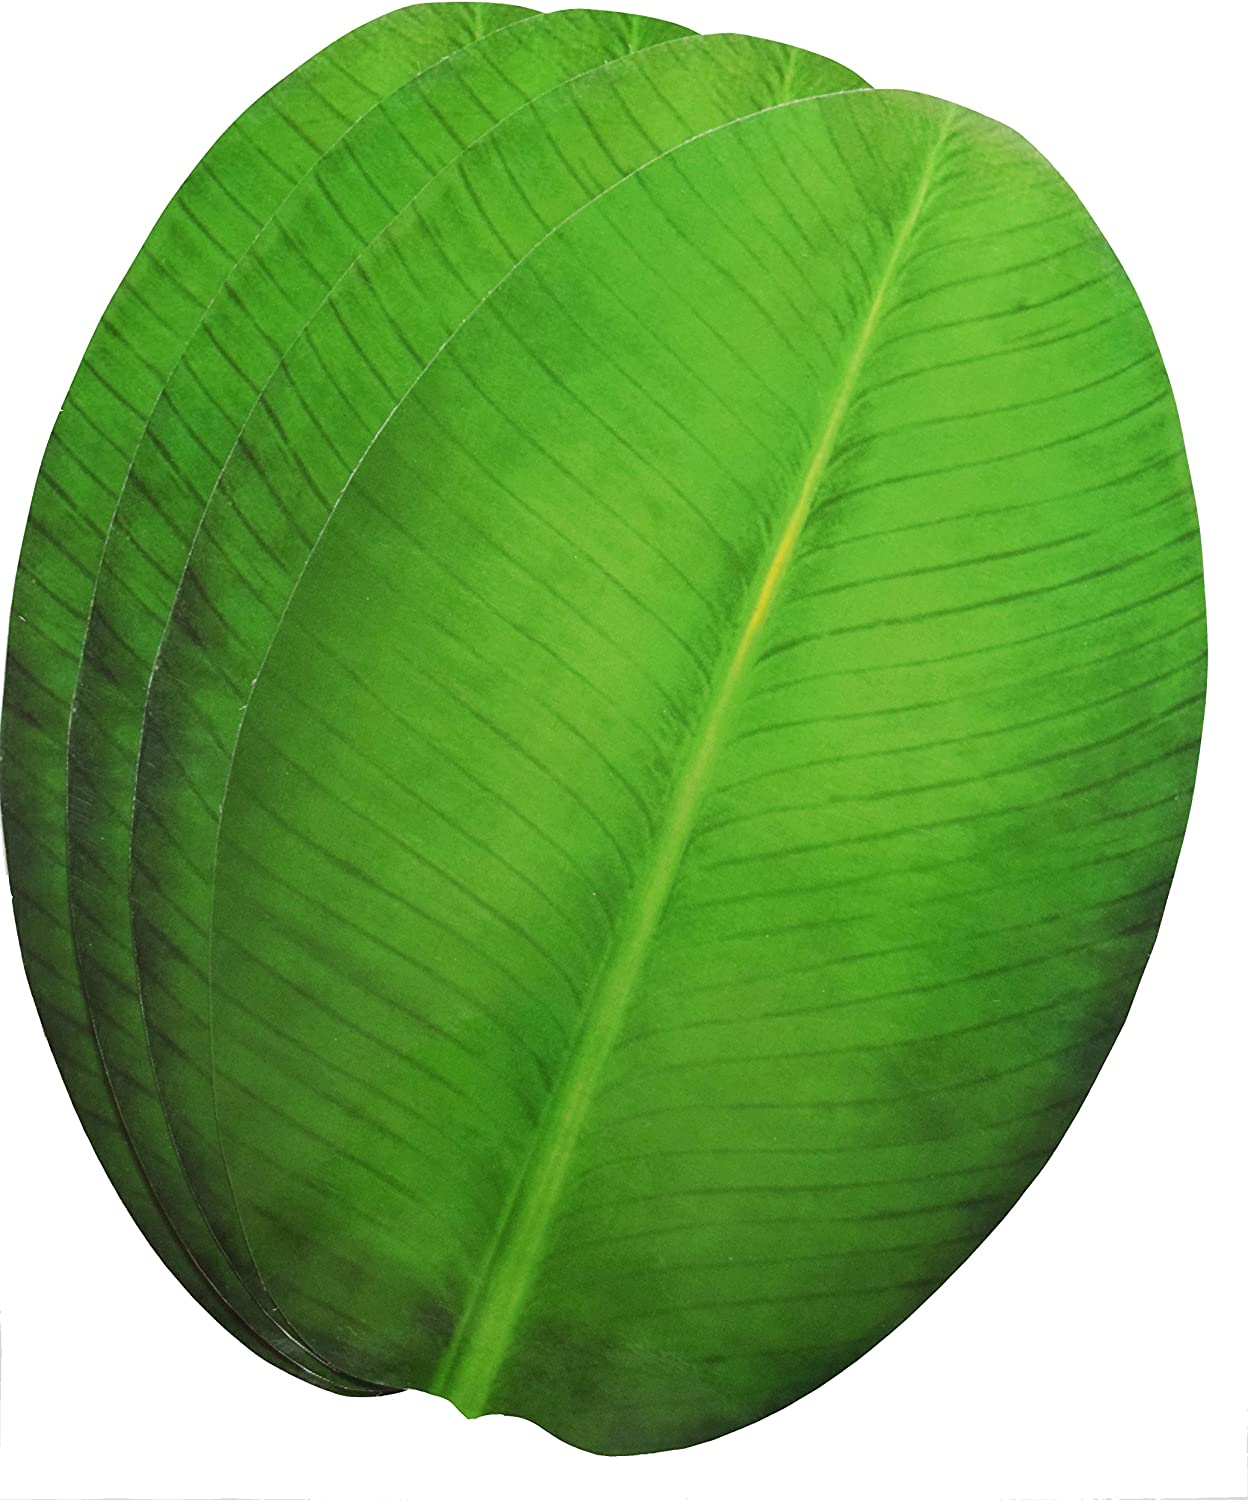 Exquisite Laminated Paper Sheets Banana Leaf Shape Table Placement//Dinning Mat Set of 4 Pcs//Diwali//Christmas